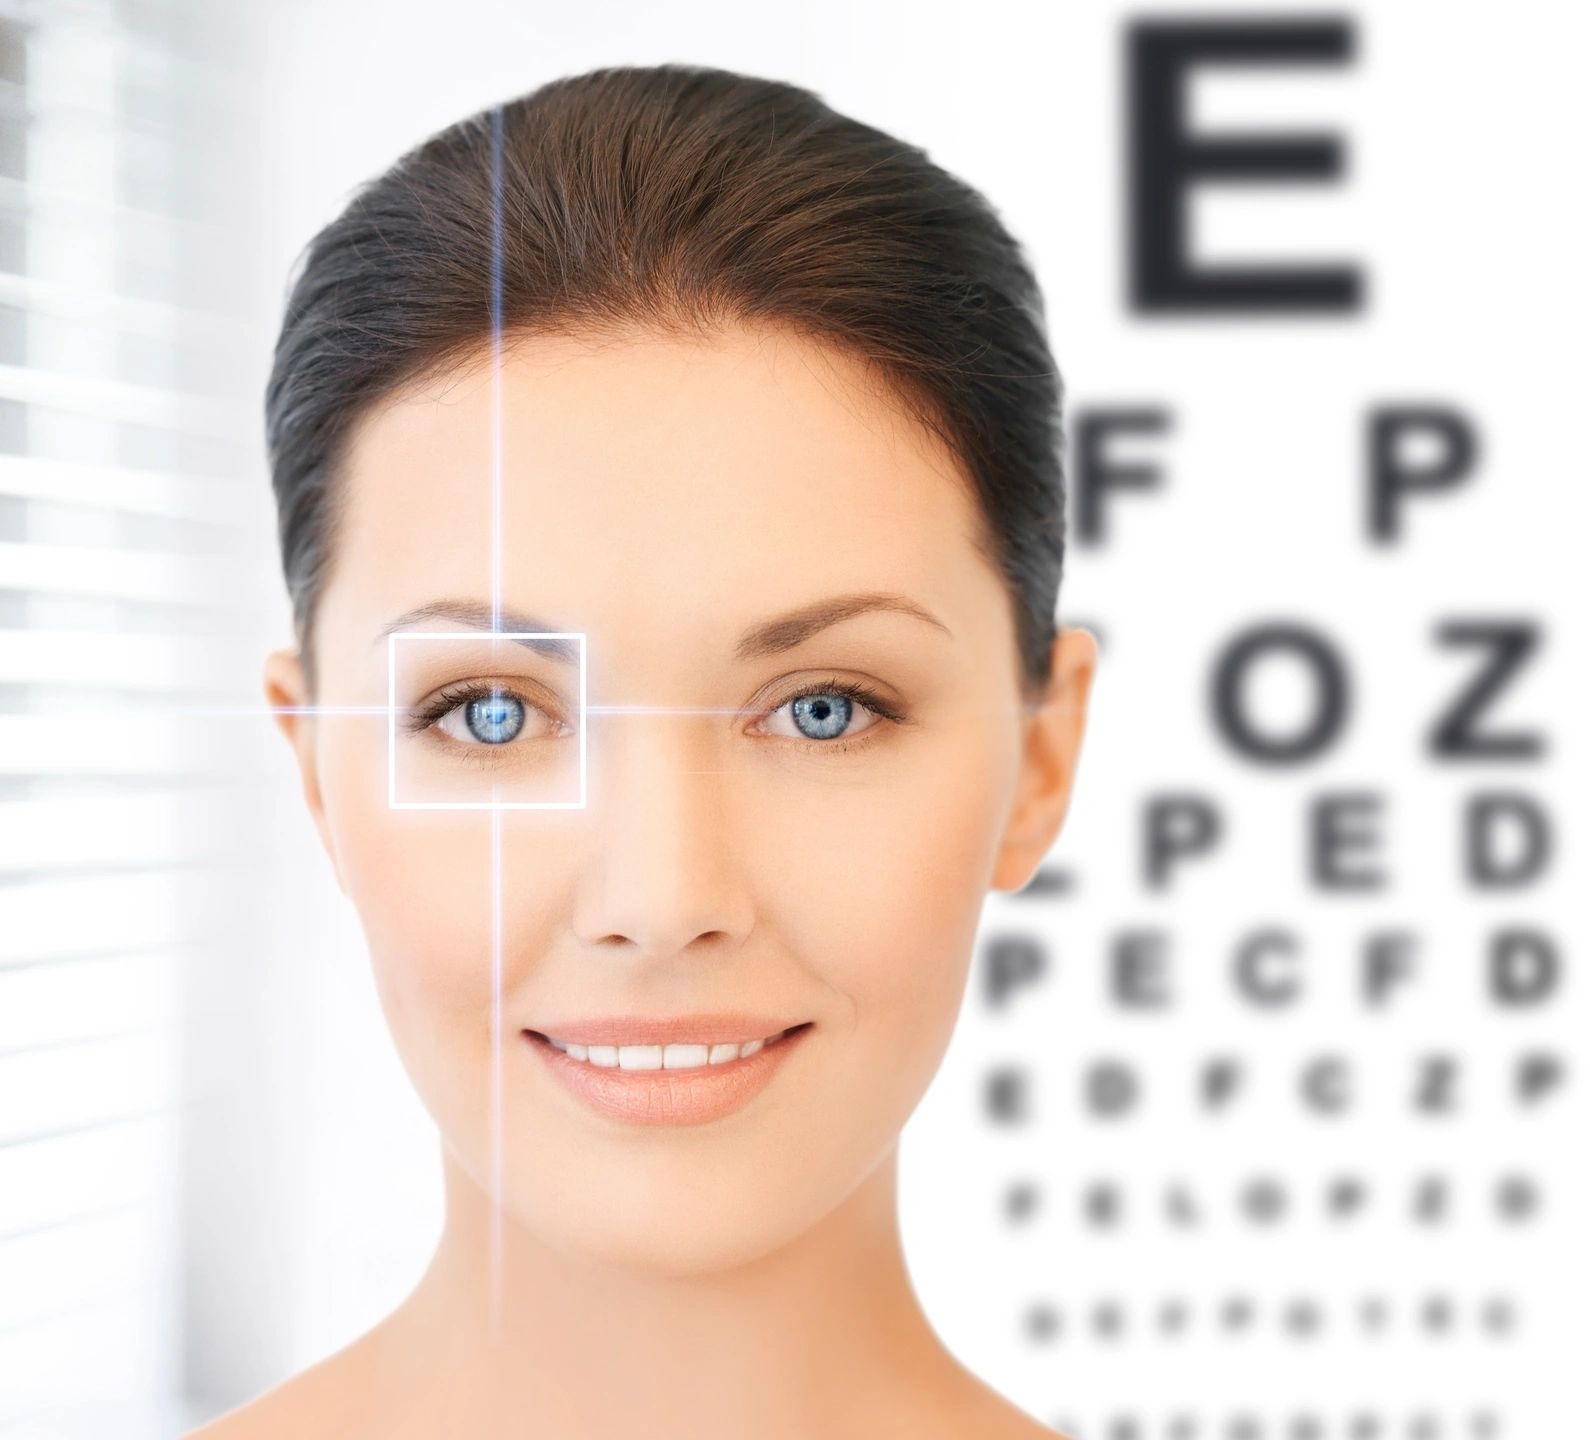 one vision eye care